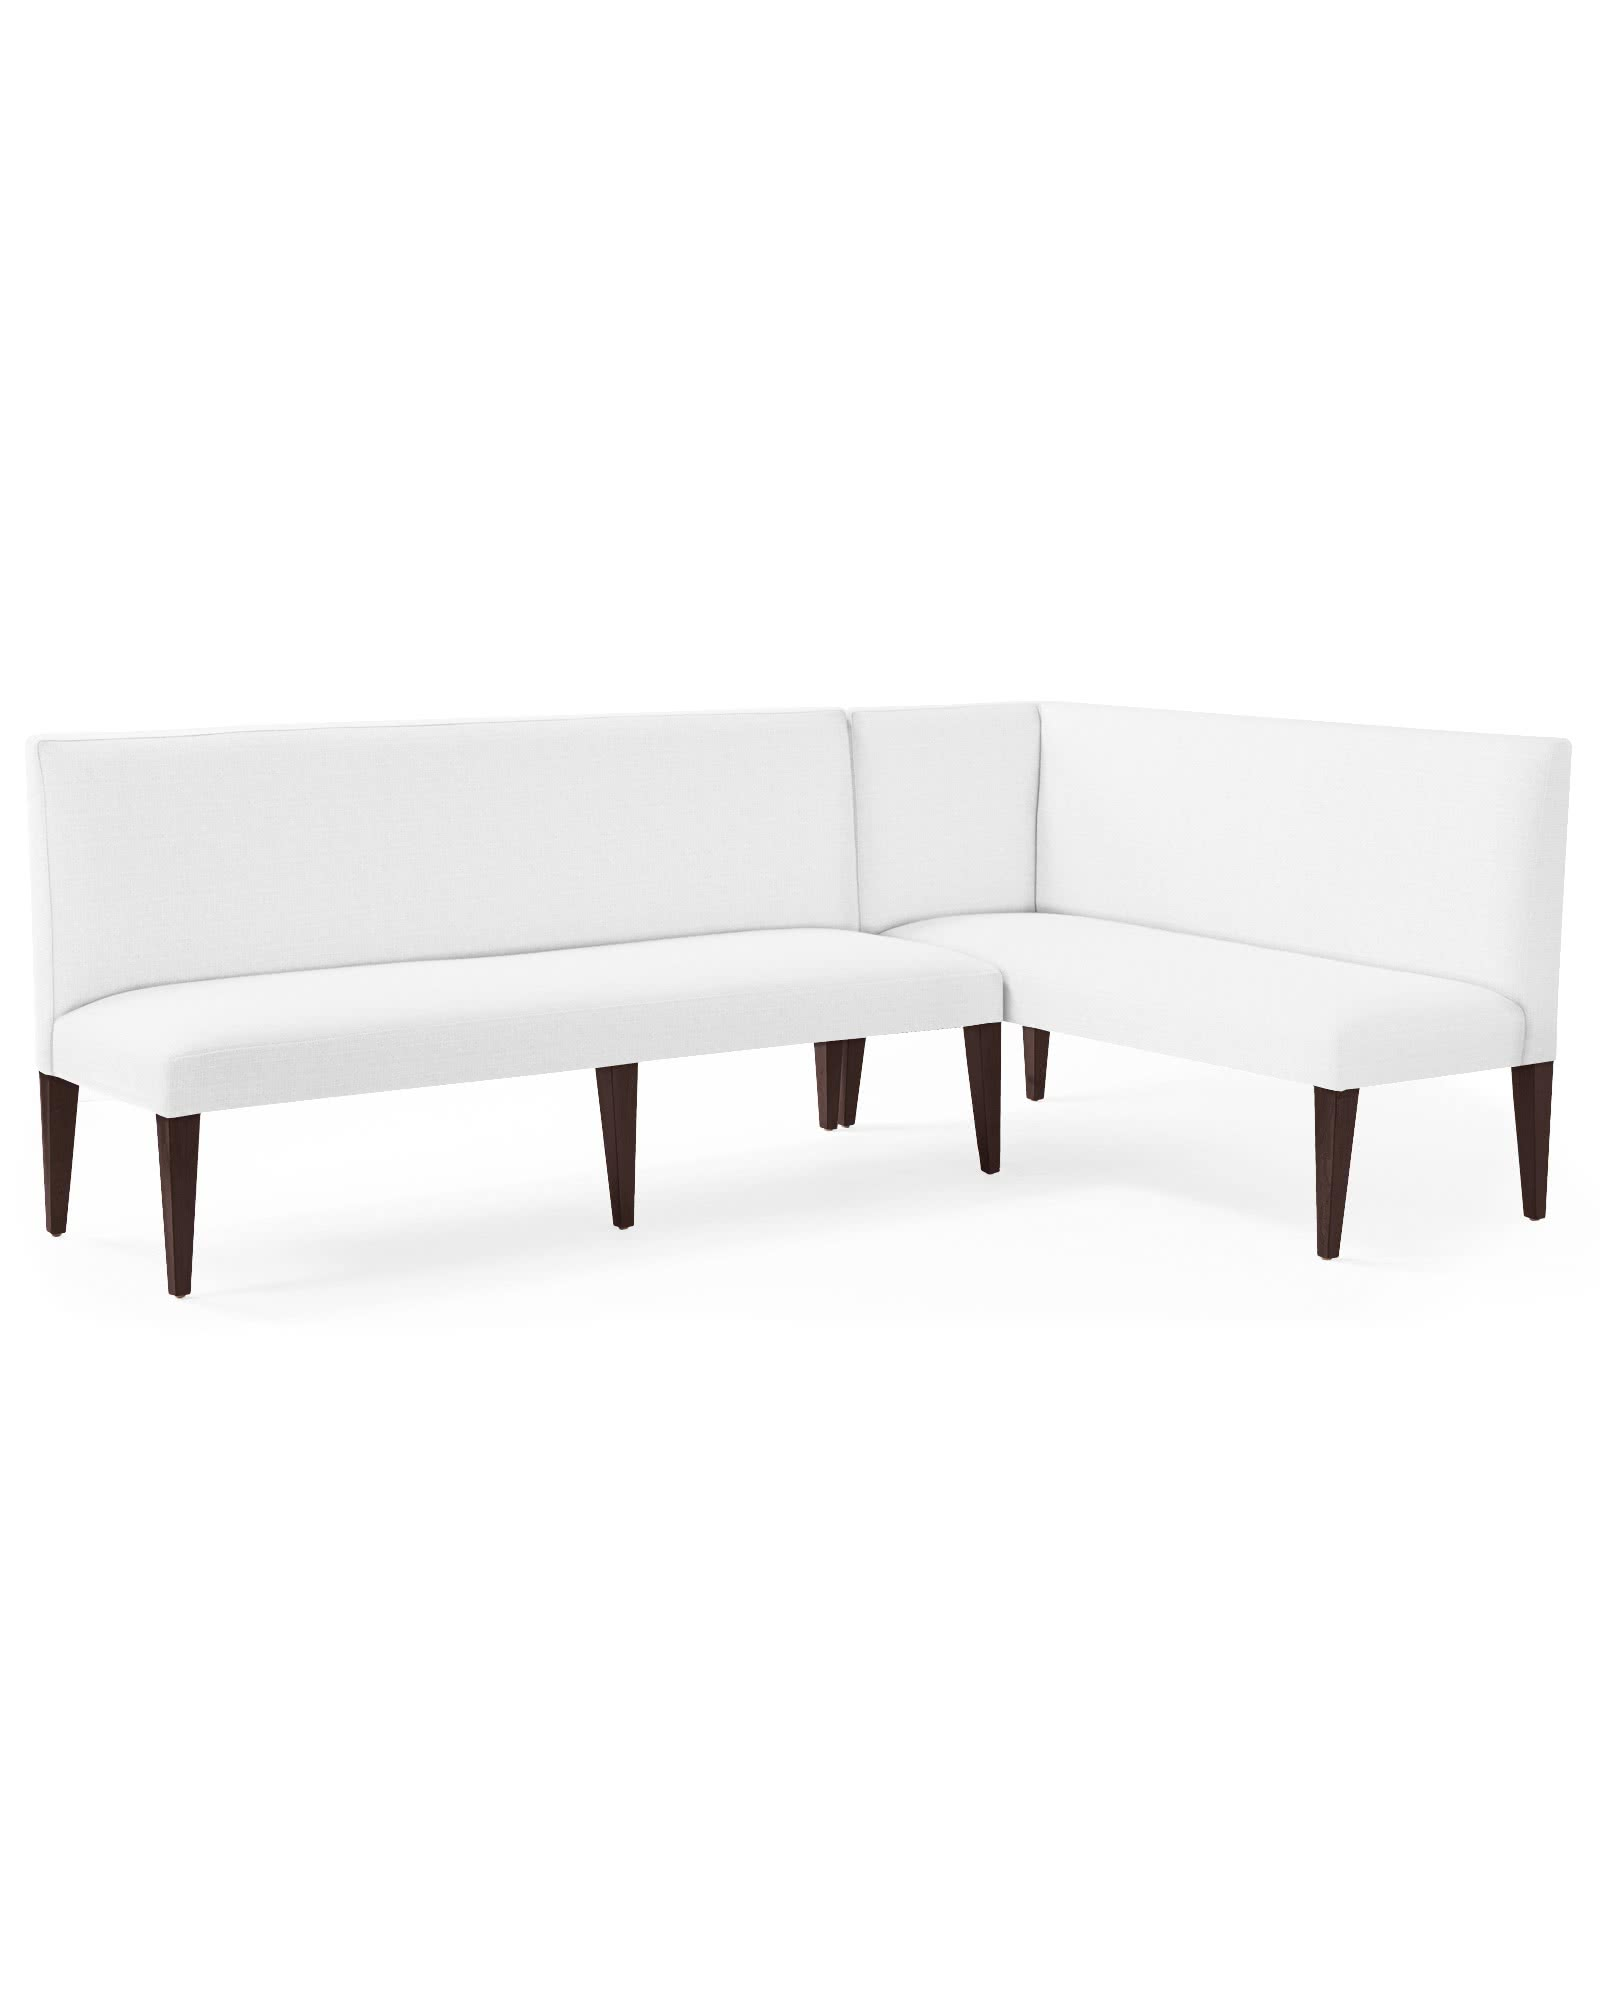 Ross Right-Facing Dining Banquette,